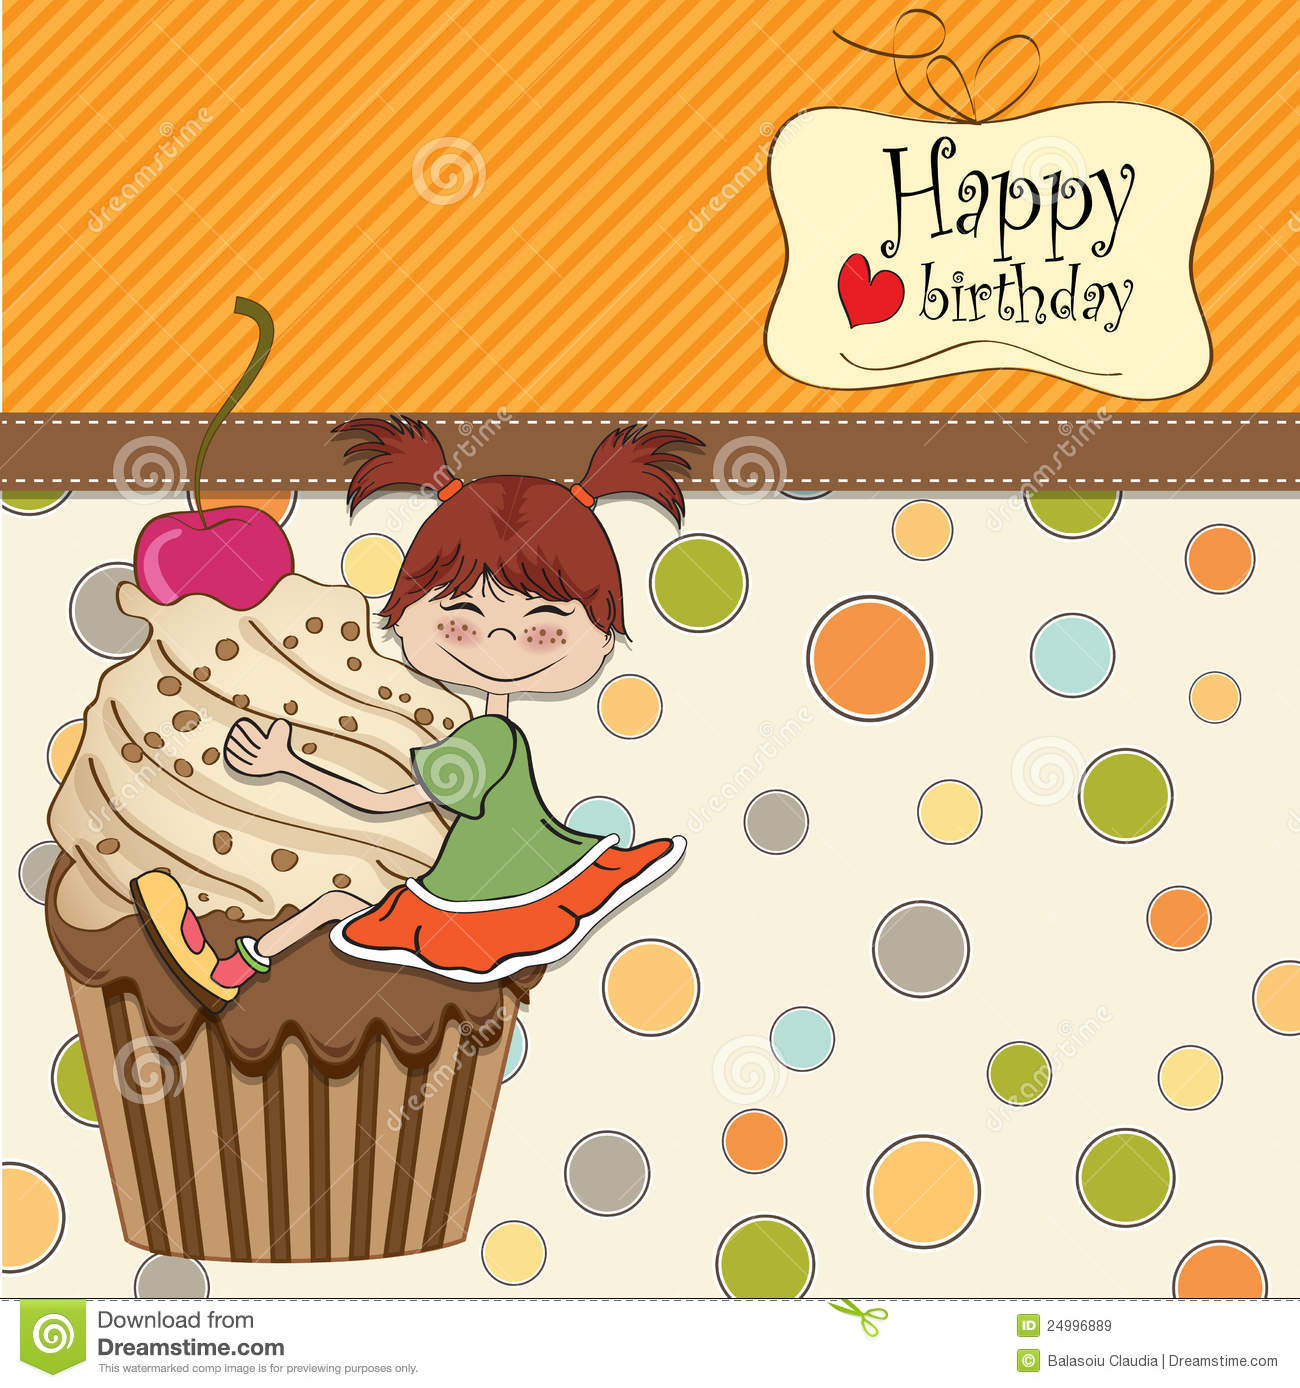 Hedendaags Birthday Card With Funny Girl Stock Illustration - Illustration of LD-96